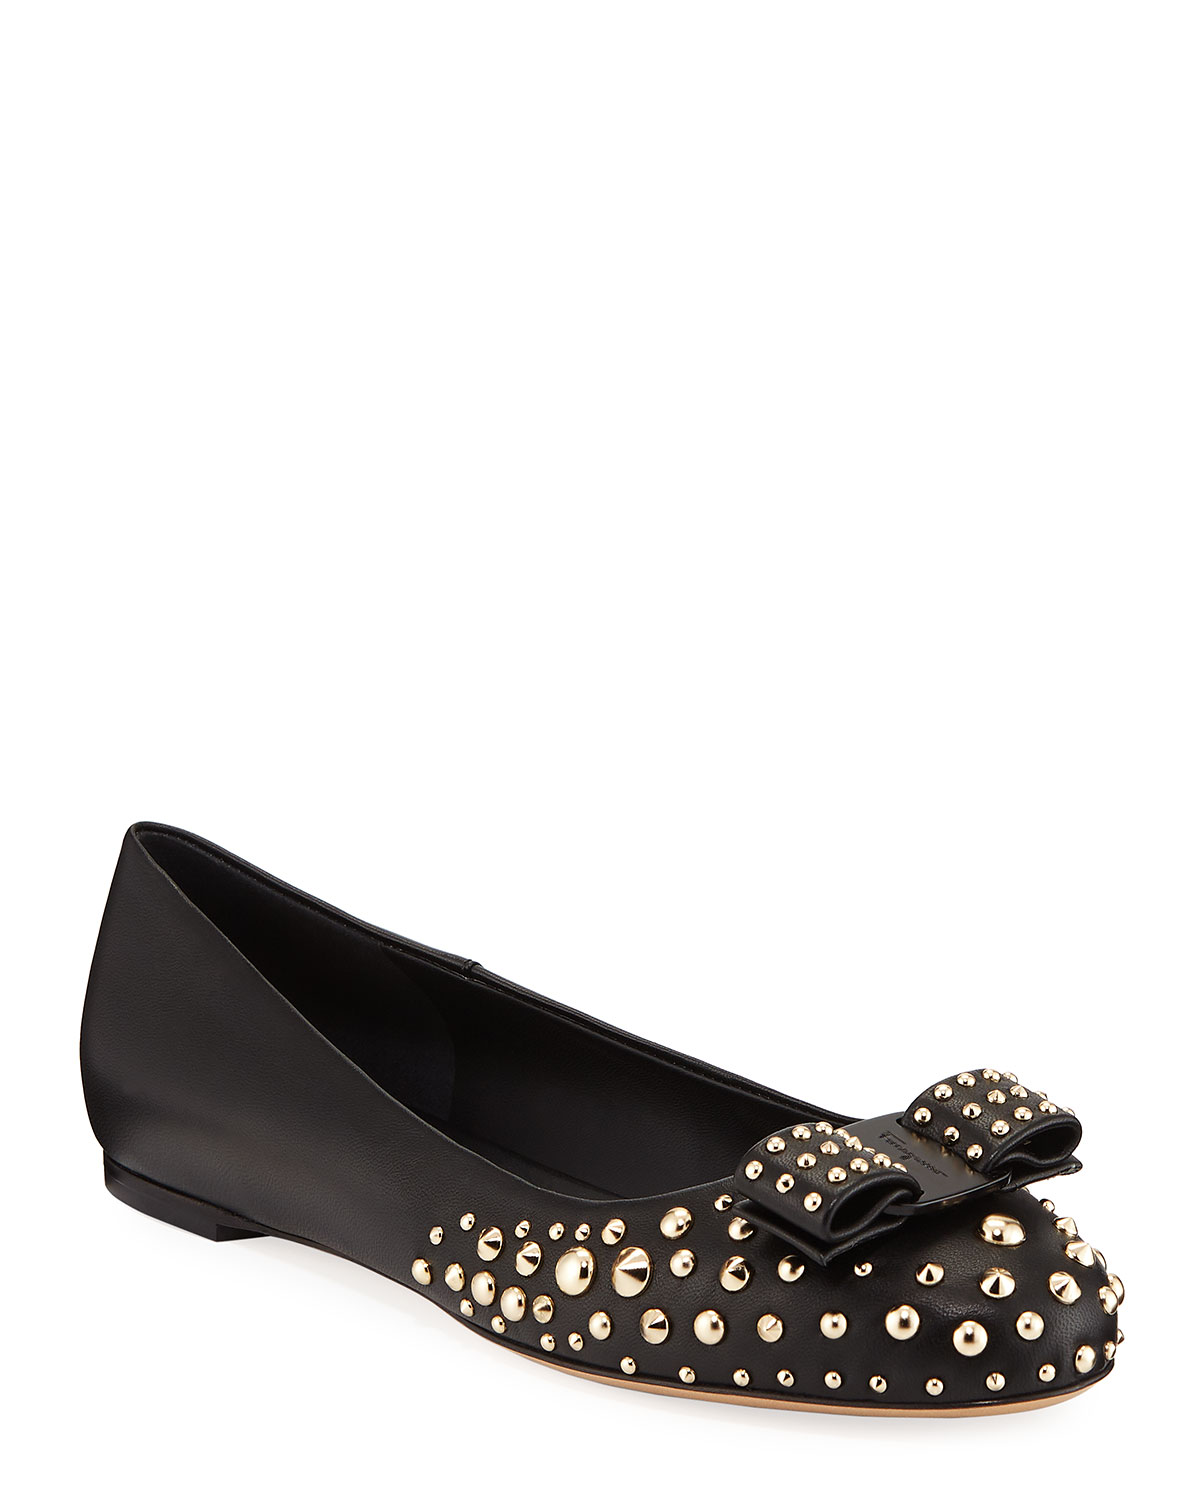 e1e4bb46 Varina Roc3 Studded Leather Ballet Flats